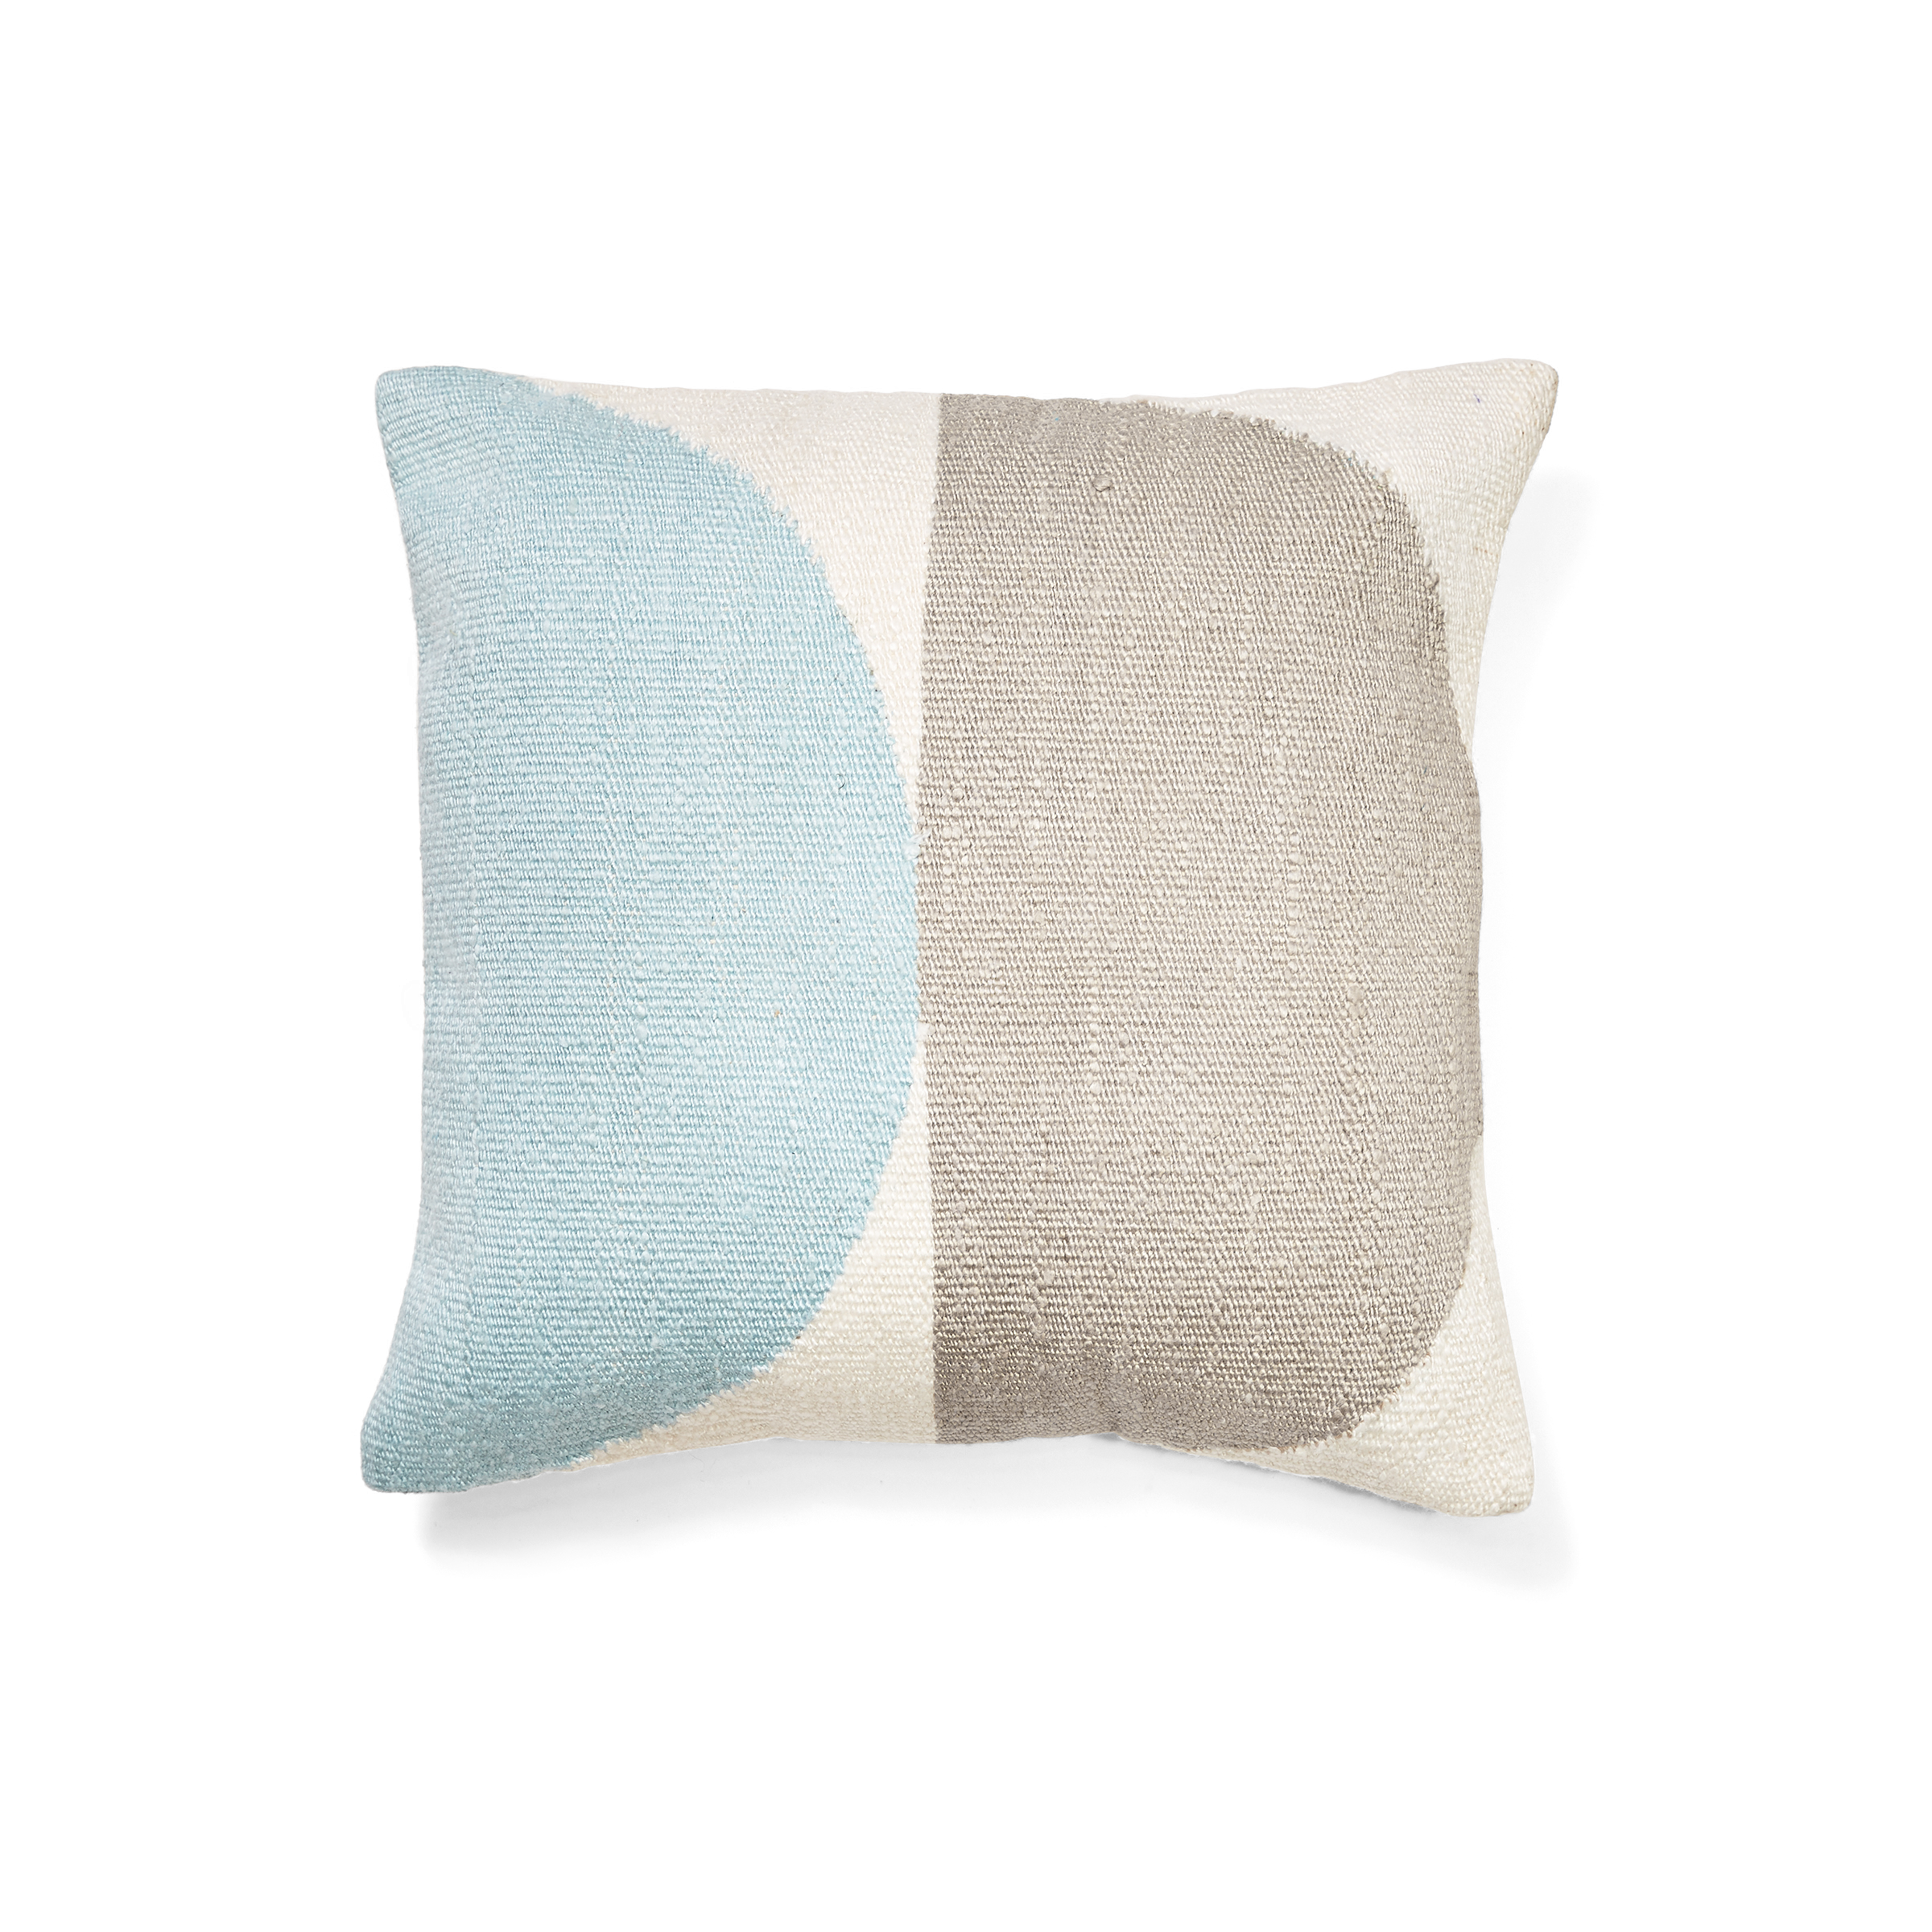 Ice Geometric Circles Pillow Cover Burrow In 2021 Pillows Pillow Covers Geometric Circle